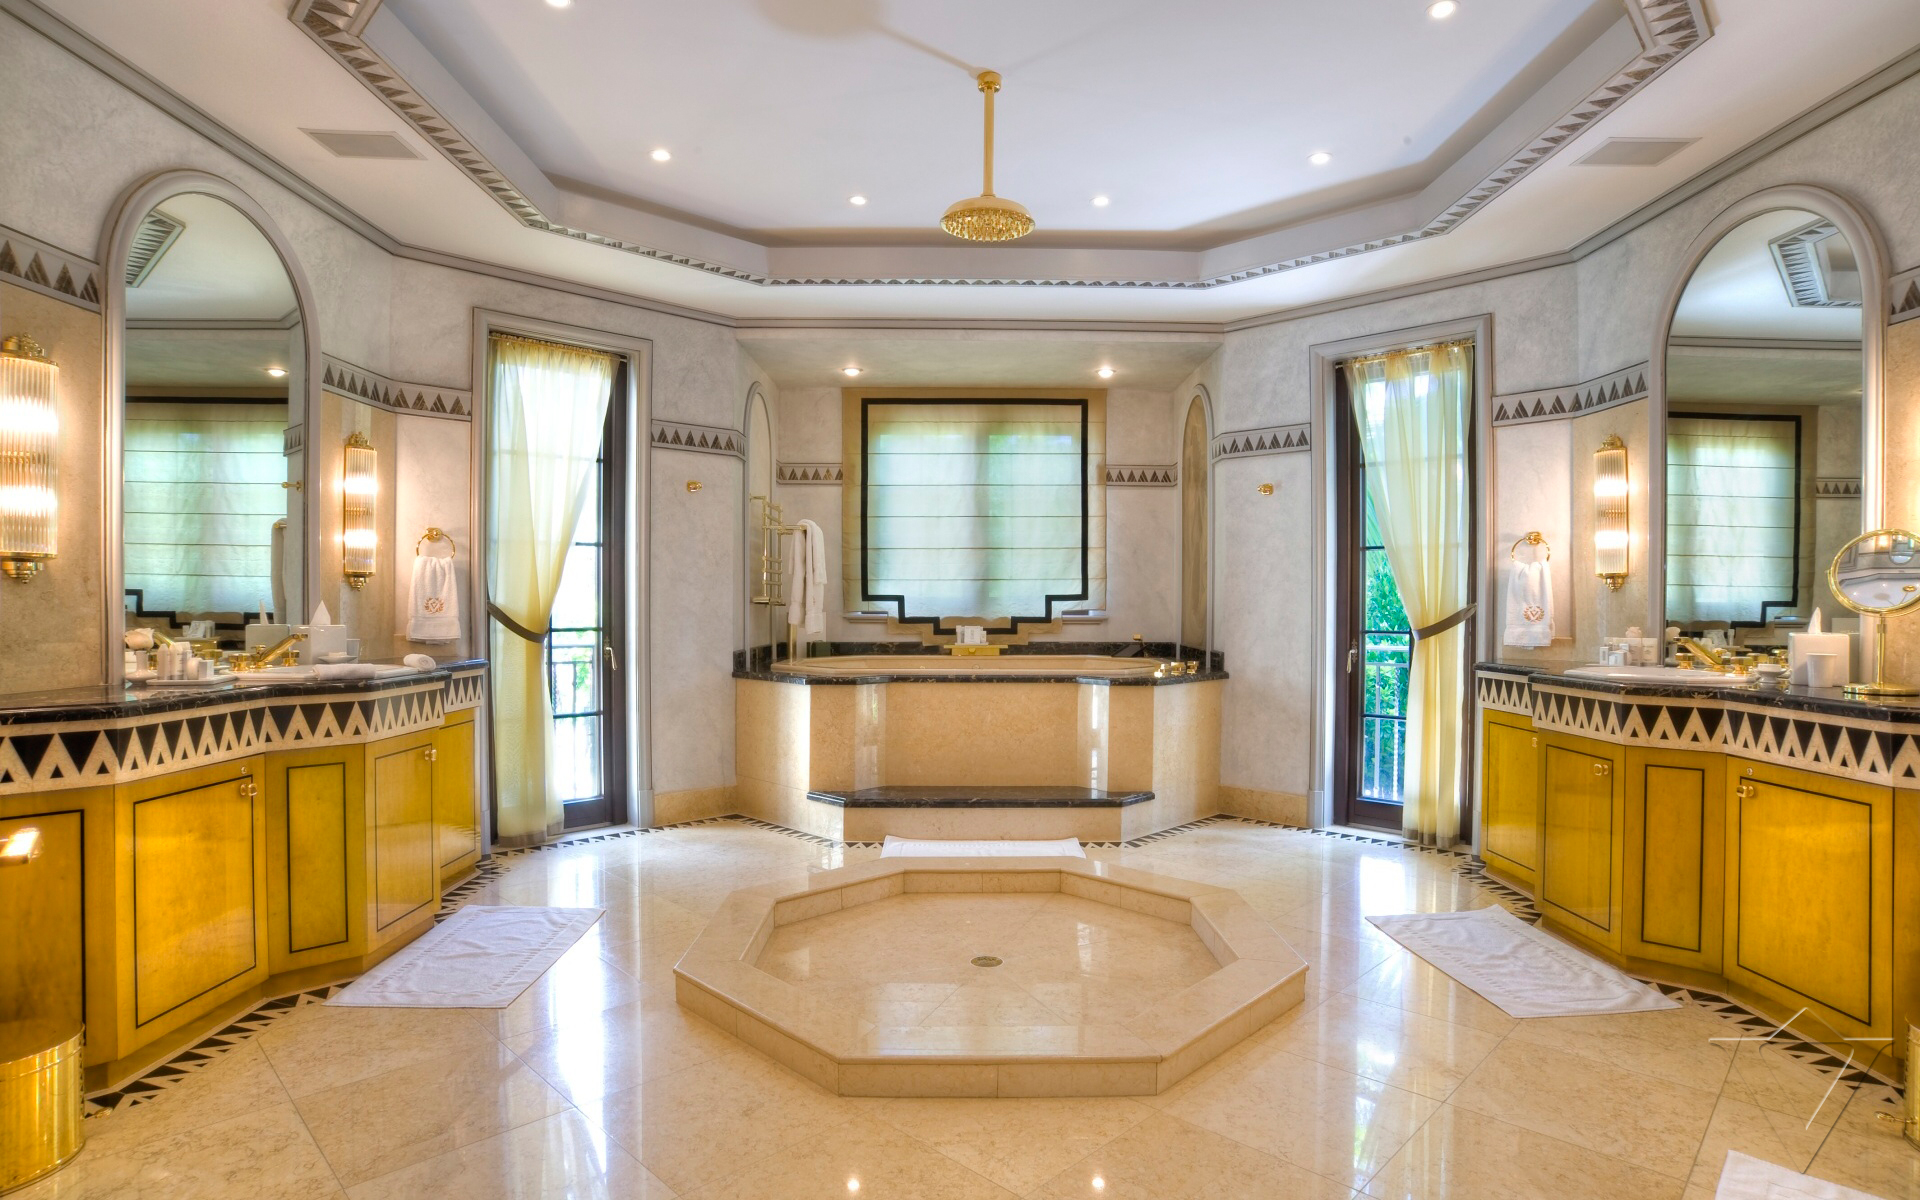 Villa contenta in miami florida bon vita for Florida bathroom designs